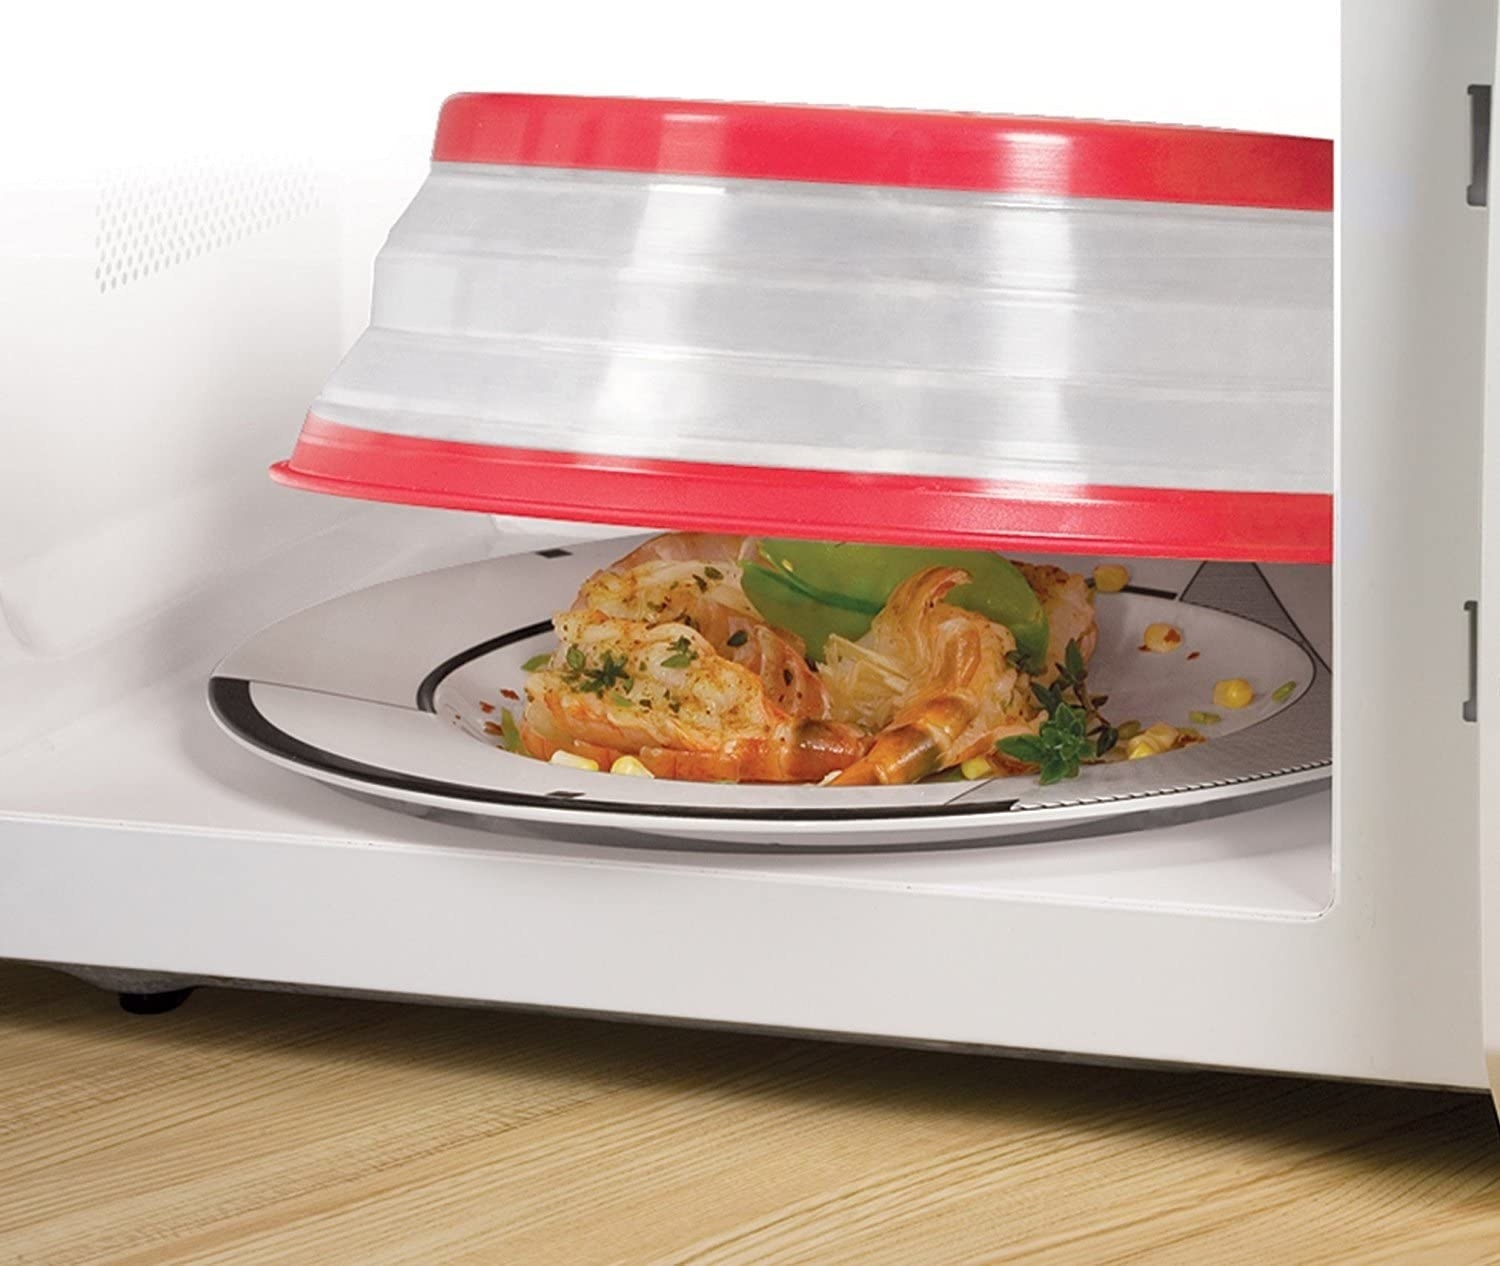 The lid on top of a plate of shrimp in a microwave